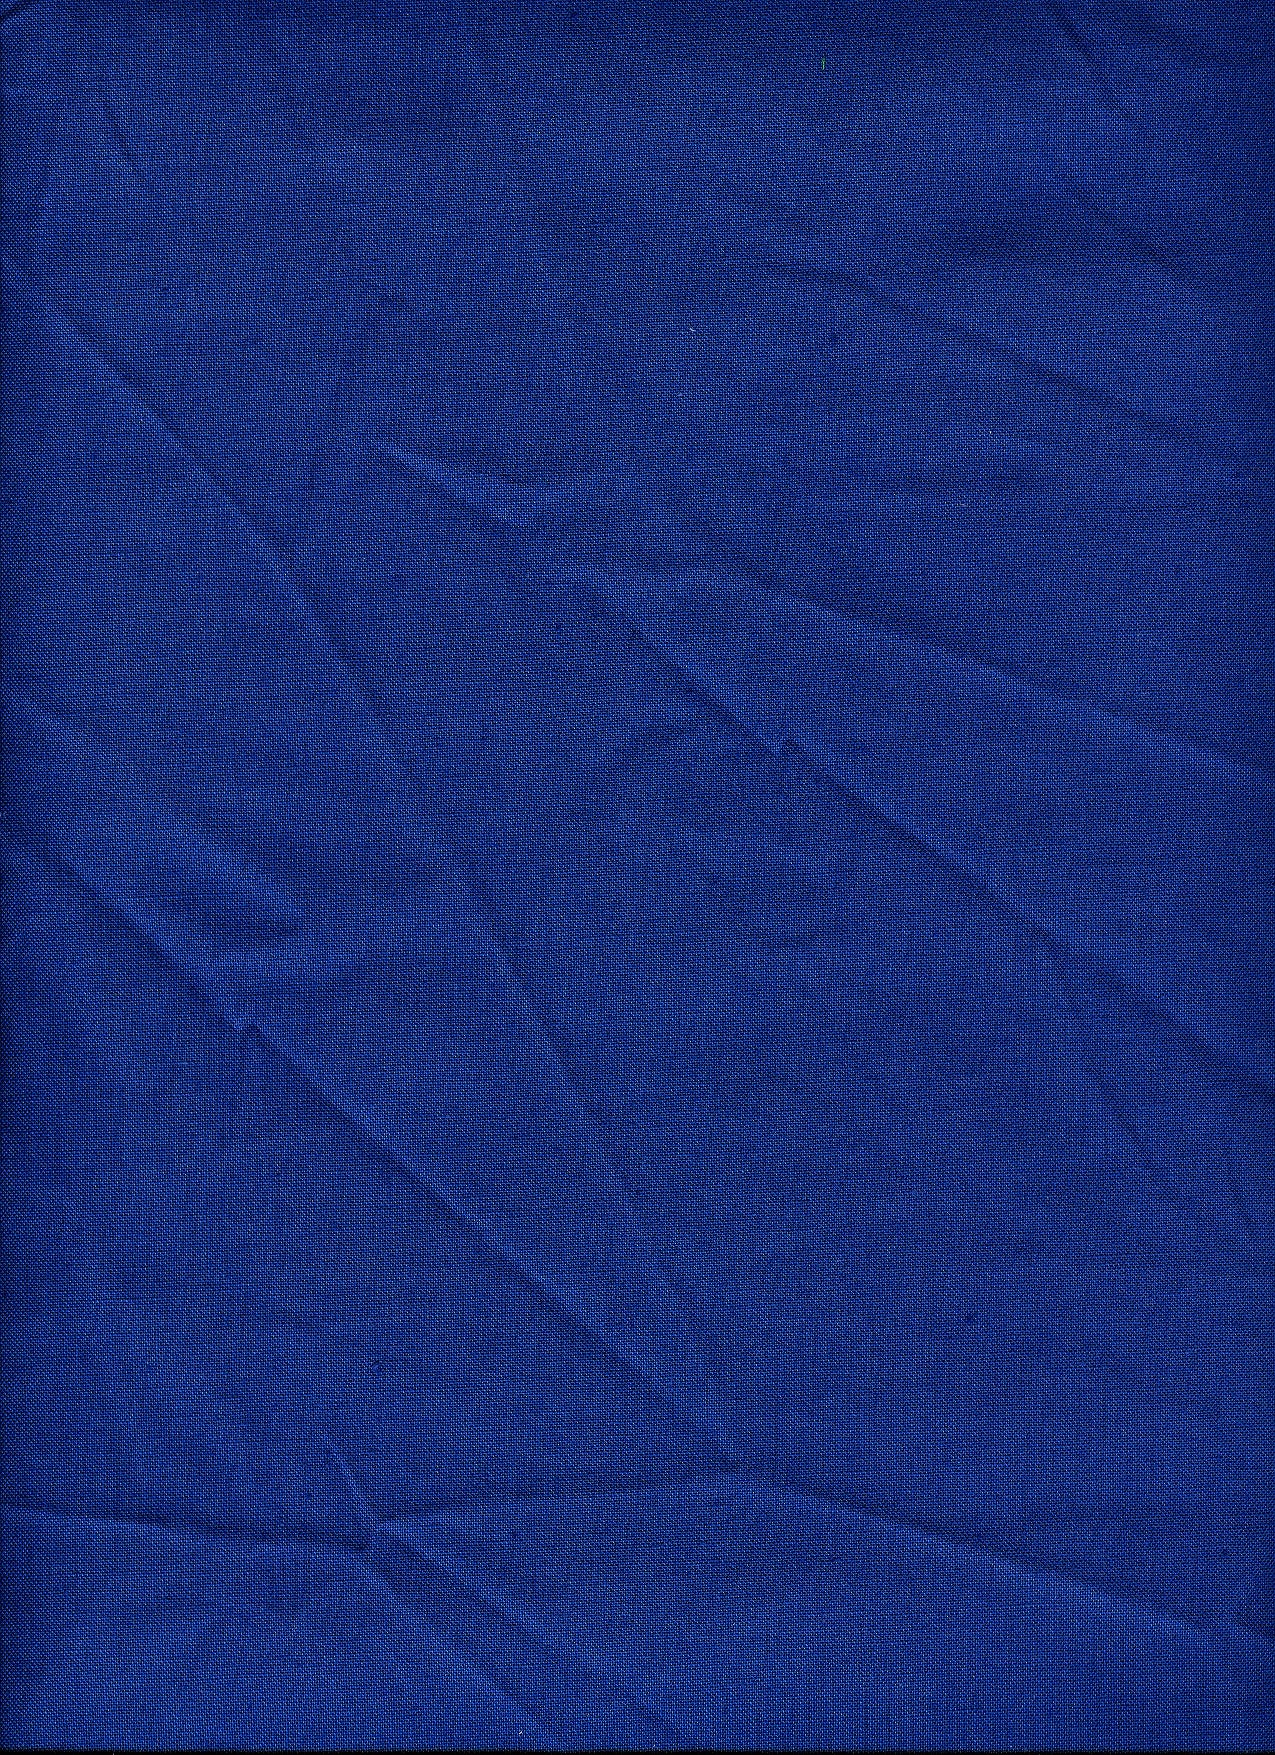 ProMaster Solid Backdrop - 10'x20' - Chroma Key Blue